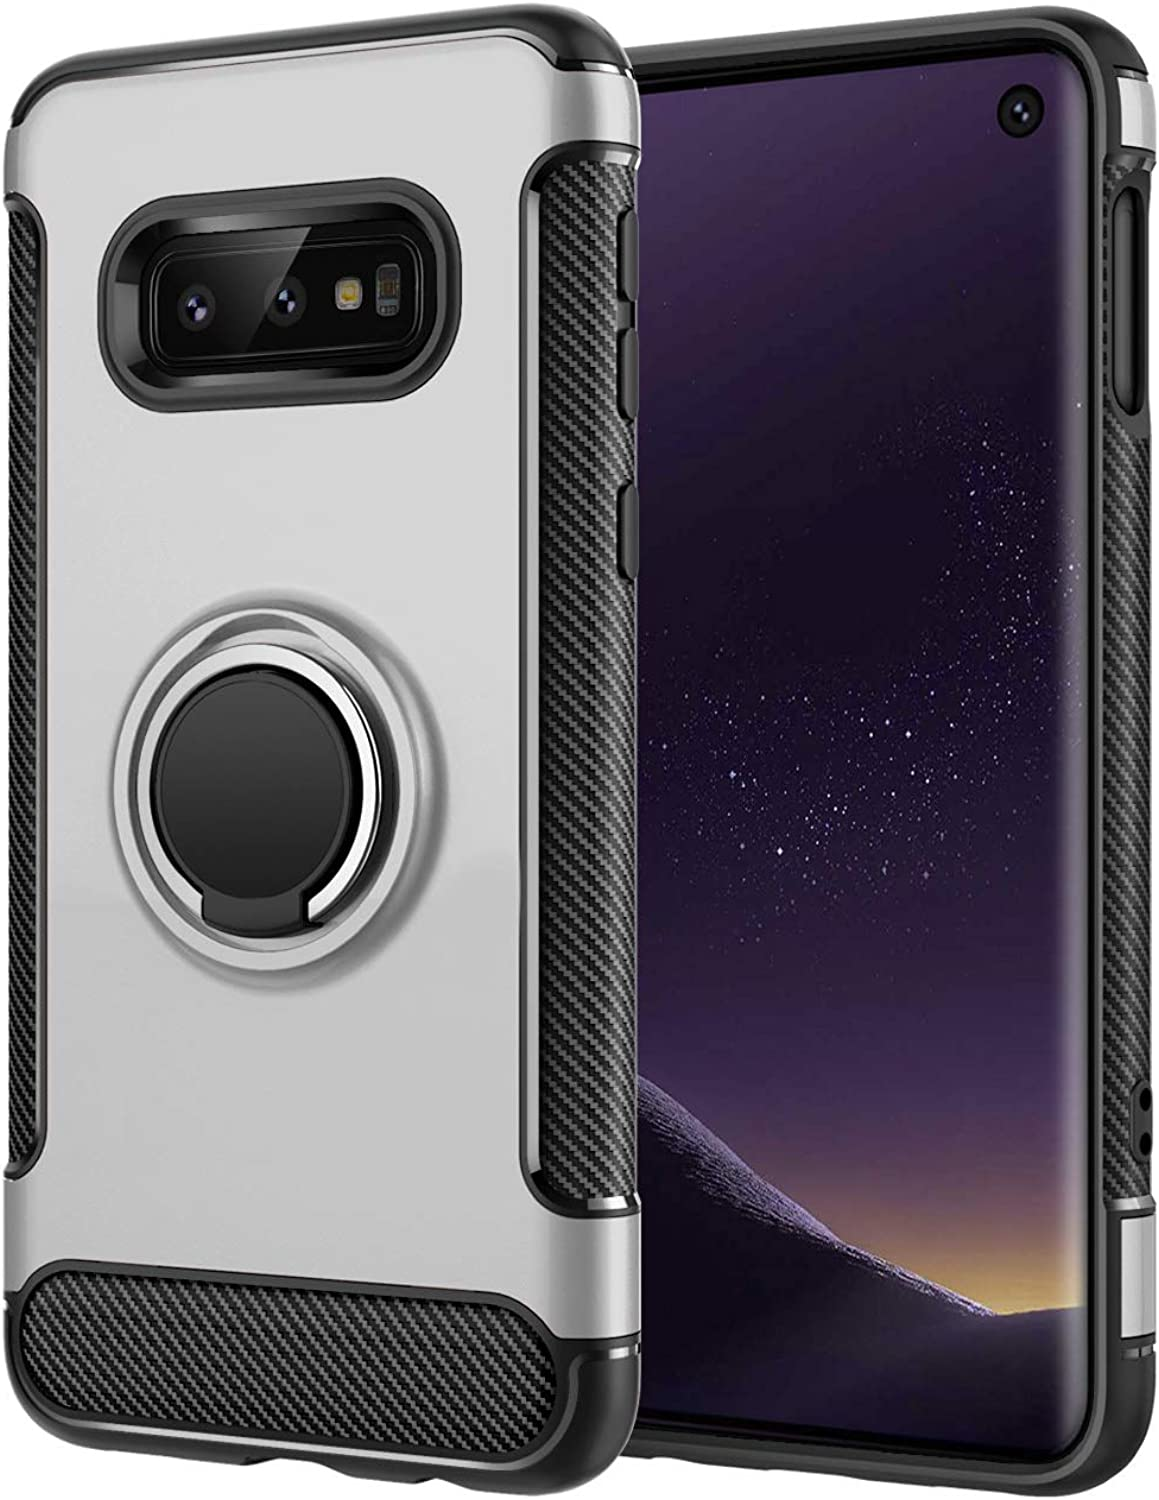 for Samsung Galaxy S10|S10e|S10 Plus|S10 5G case Hard Shell Cover Holder 360/°Rotating Ring Grip Cases for Magnetic Car Mount S10, Silver